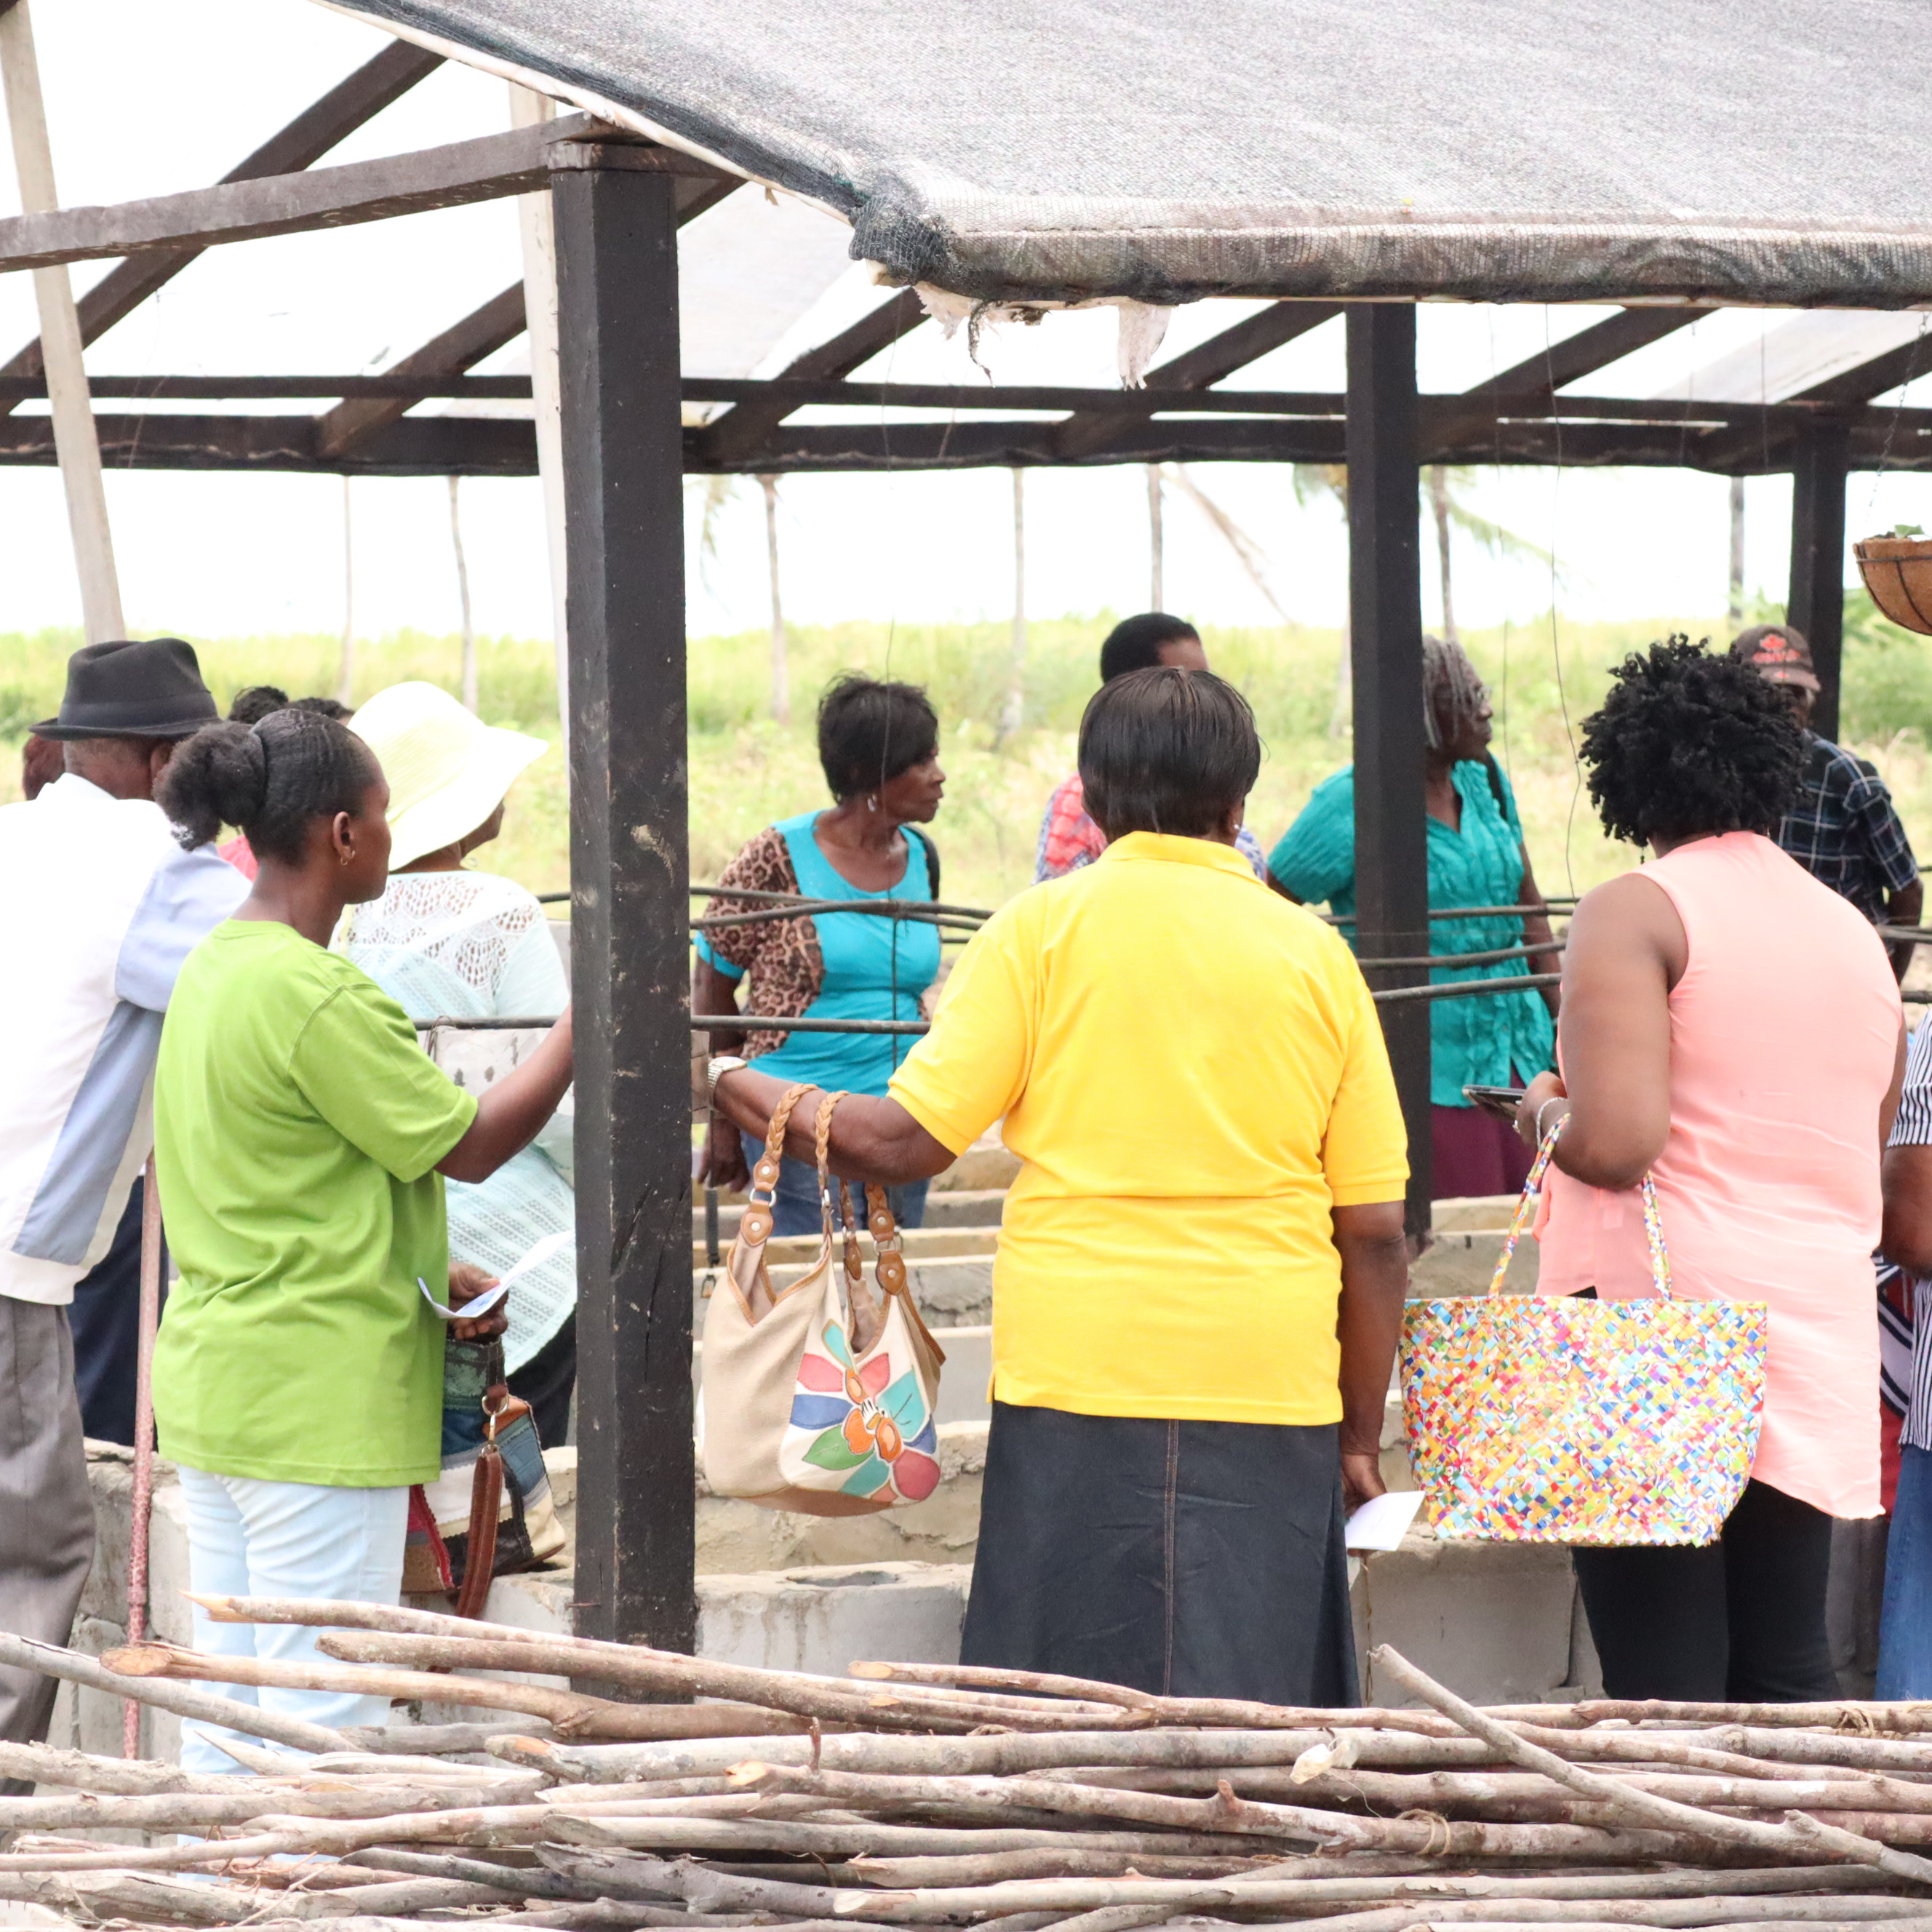 Some of the participants during a demonstration at GSA's shadehouse